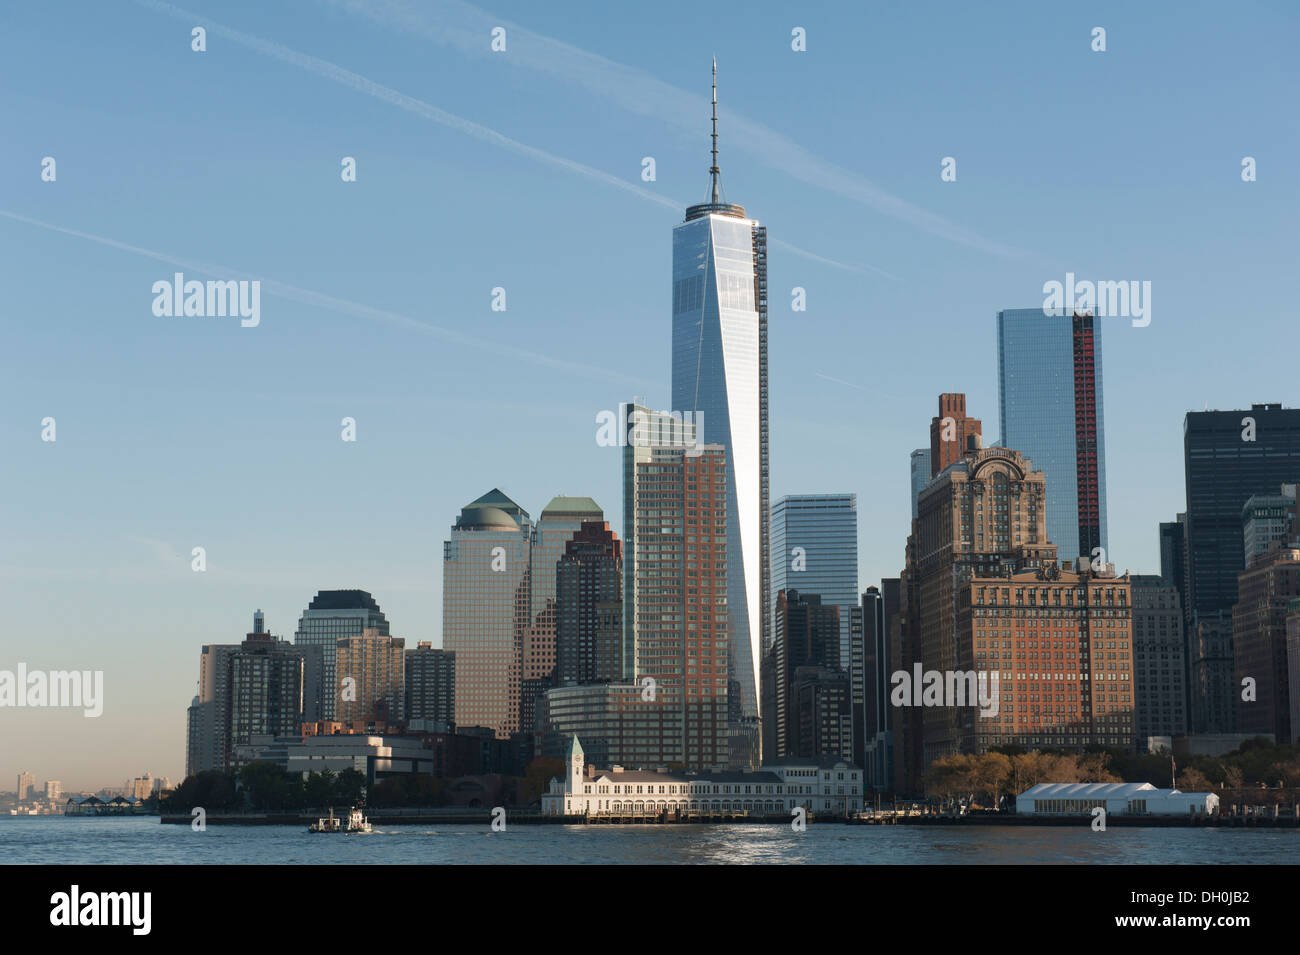 1 World Trade Center, designed by David Childs of Skidmore, Owings & Merrill, towers over lower Manhattan, New York City. - Stock Image